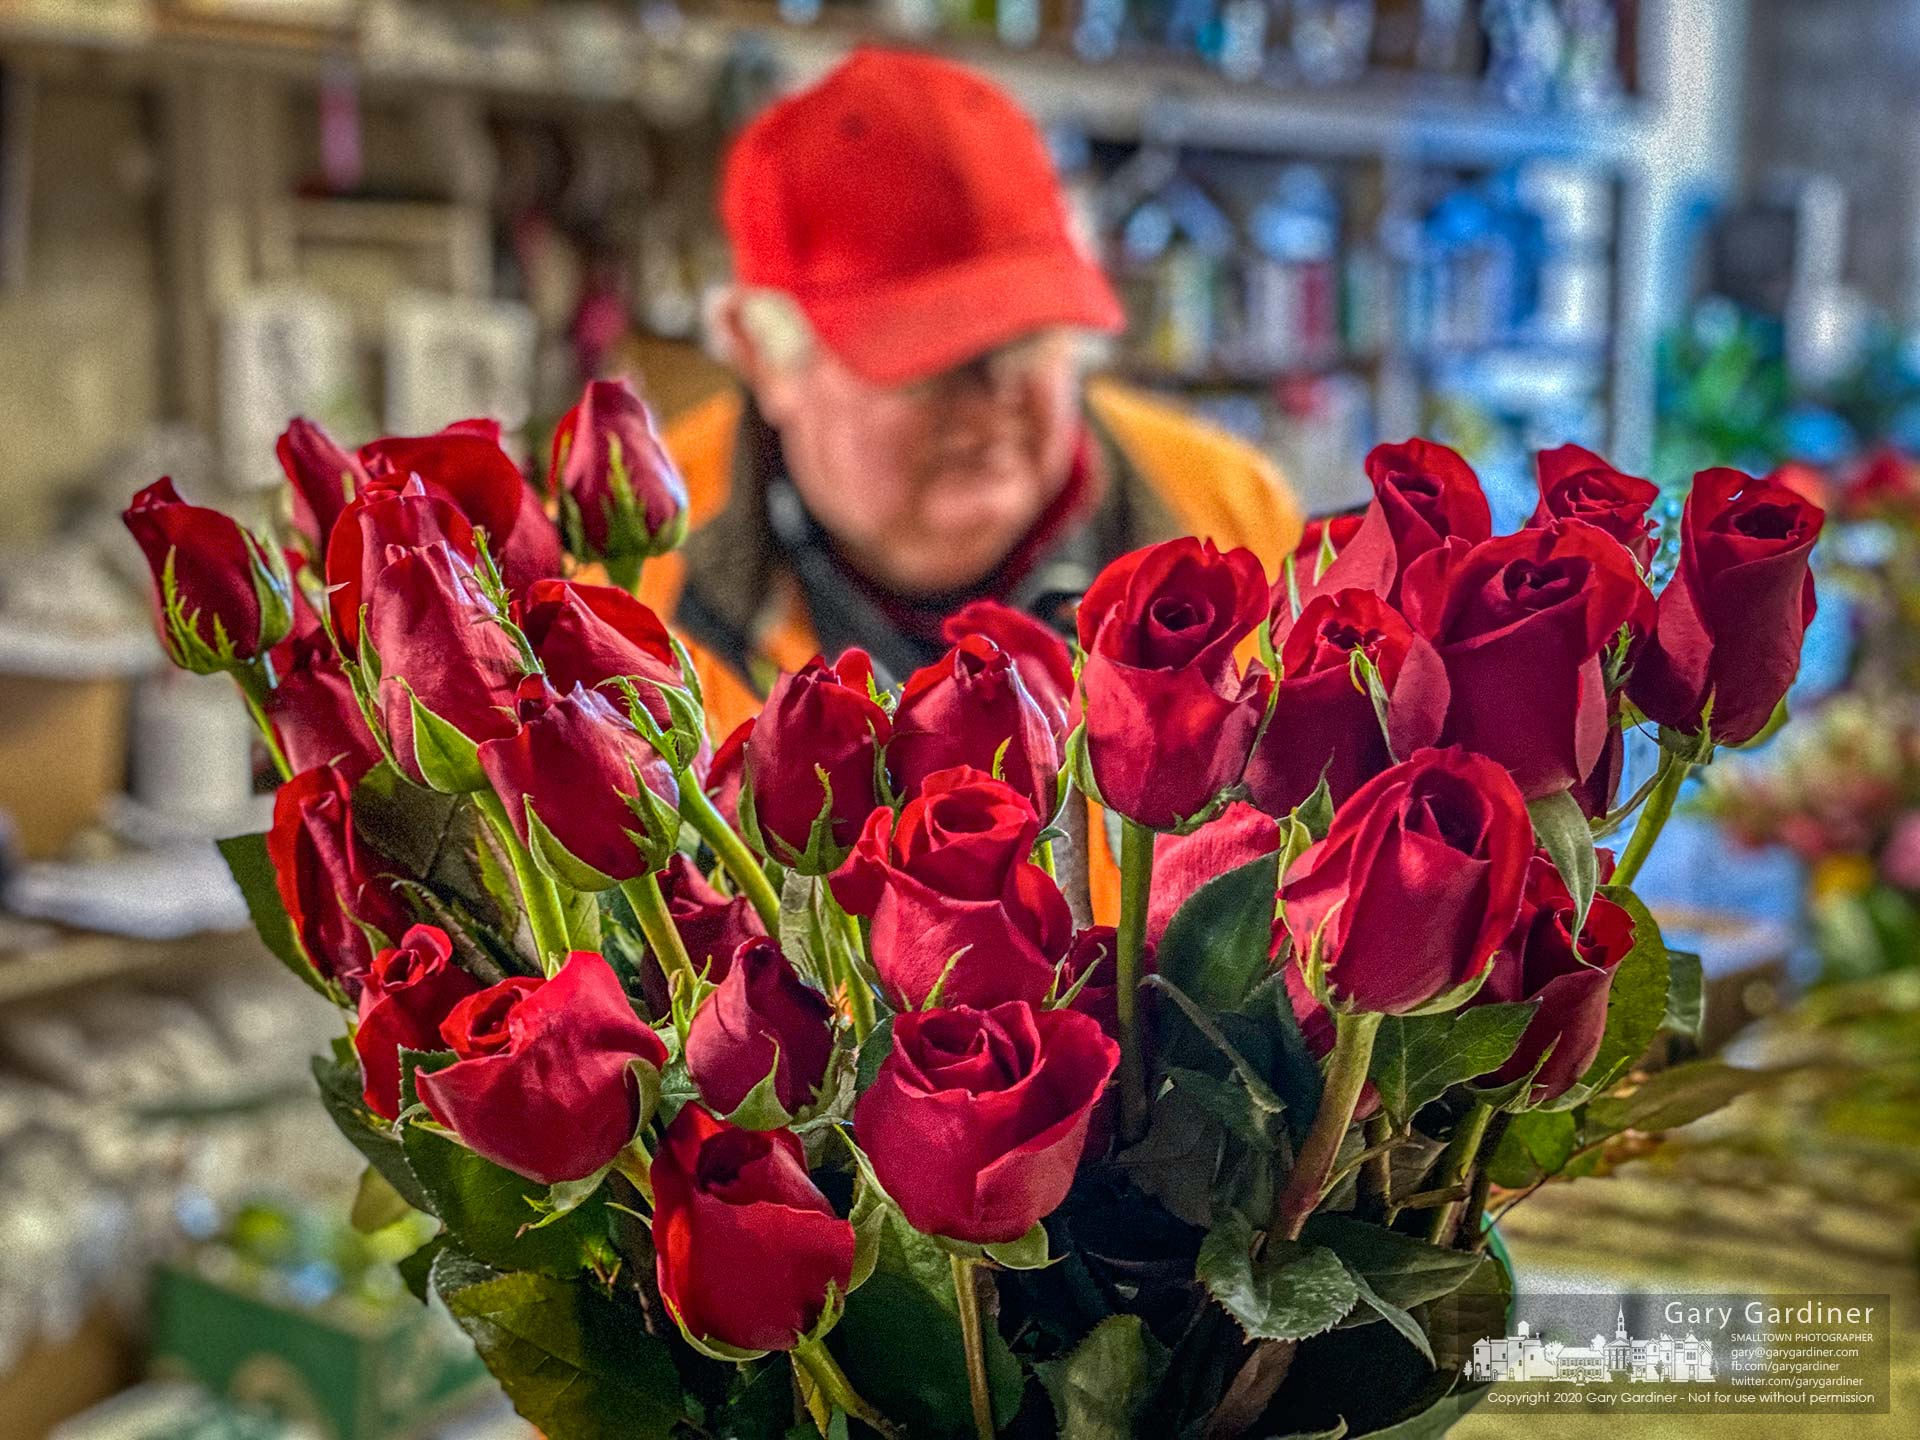 Florist Dave Talbott stands at his work table in the backroom of Talbotts Flowers where he spent the day preparing flowers, mostly roses, for others to show their affection for significant others and family. My Final Photo for Feb. 14, 2020.